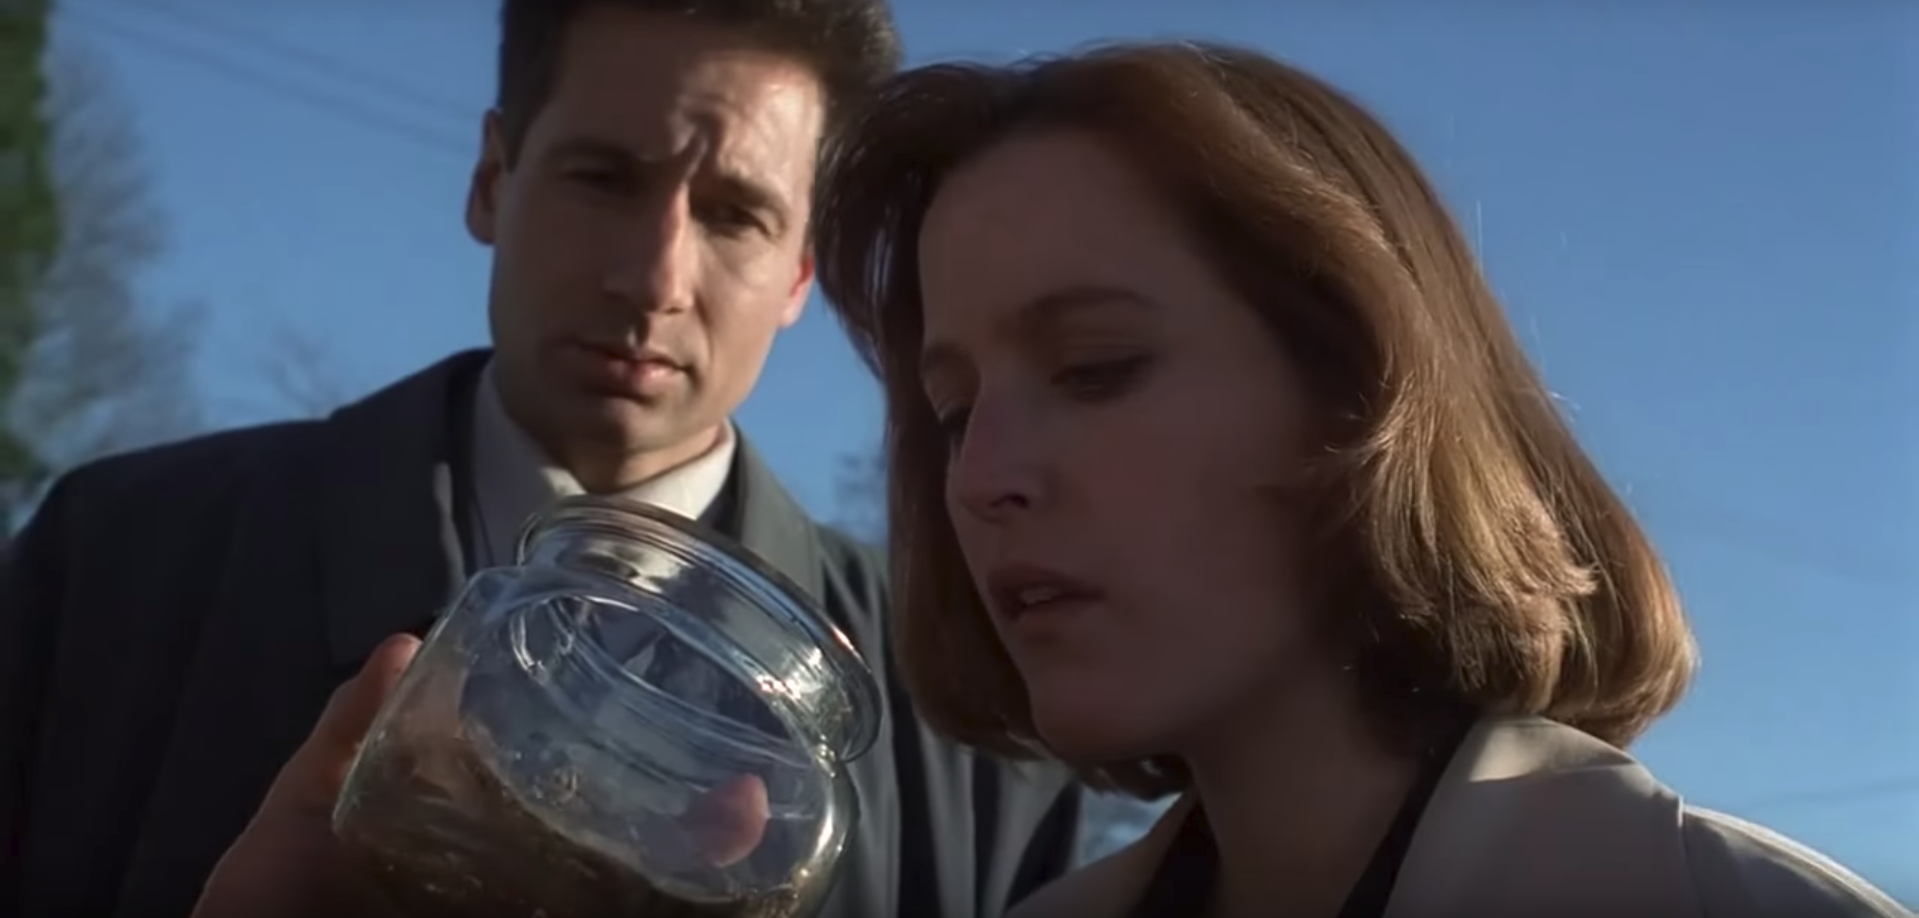 My Favorite Murder if they were Scully from The X-Files